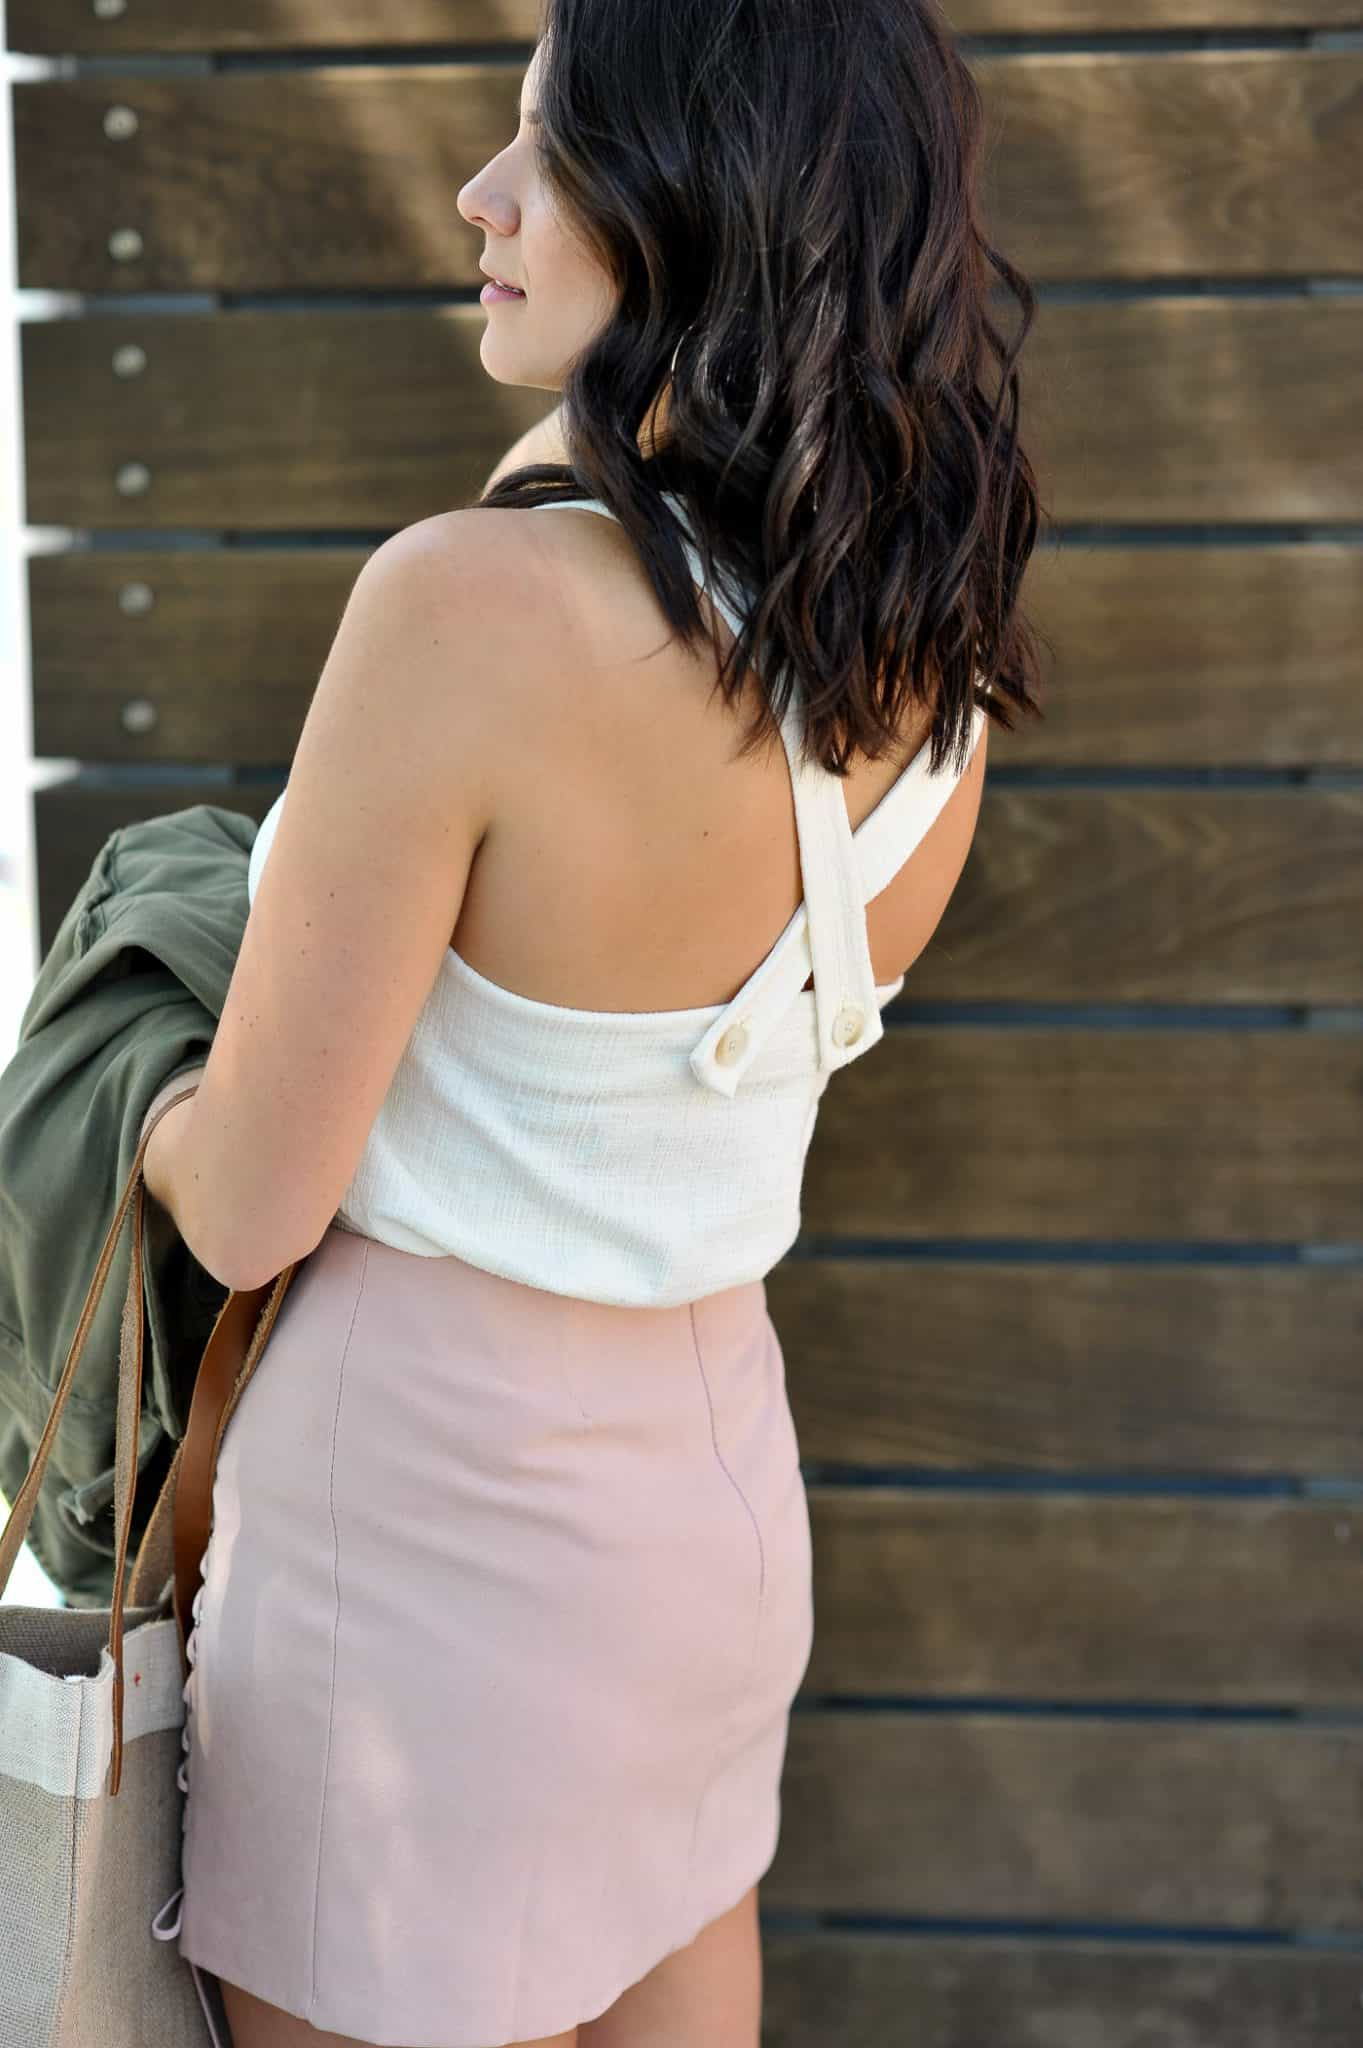 Short hair ideas, lace up blush mini skirt, casual summer outfit ideas - My Style Vita @mystylevita